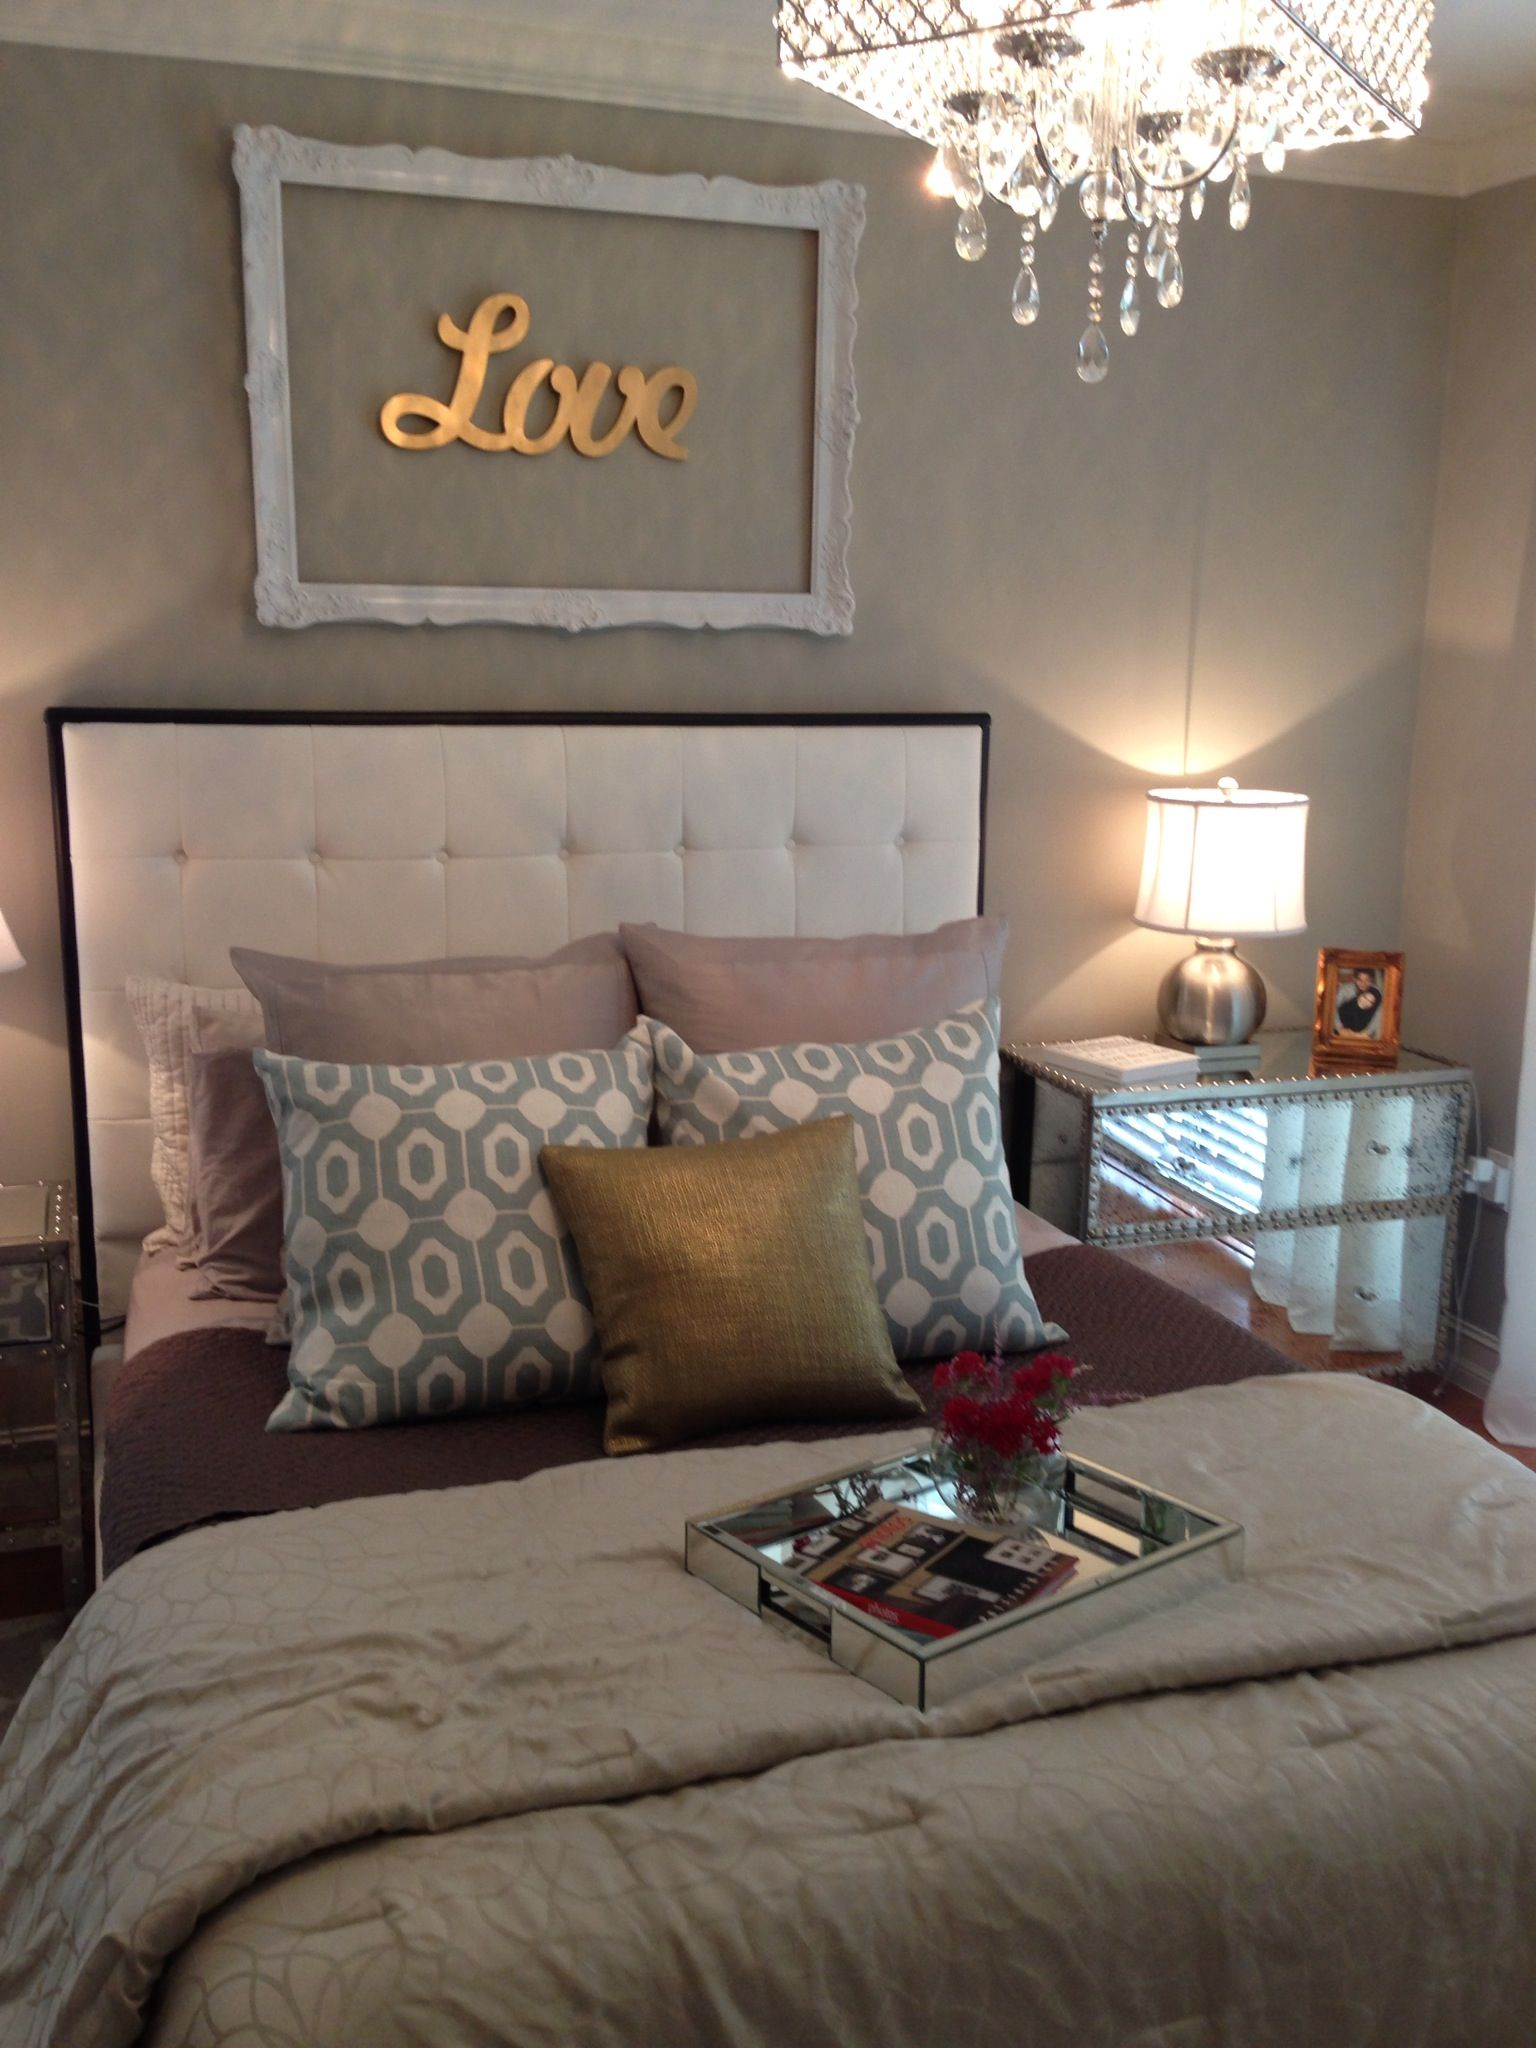 Bedroom wall decorating ideas picture frames - Too Many Different Colors But I Love The Decor Above The Bed Amber